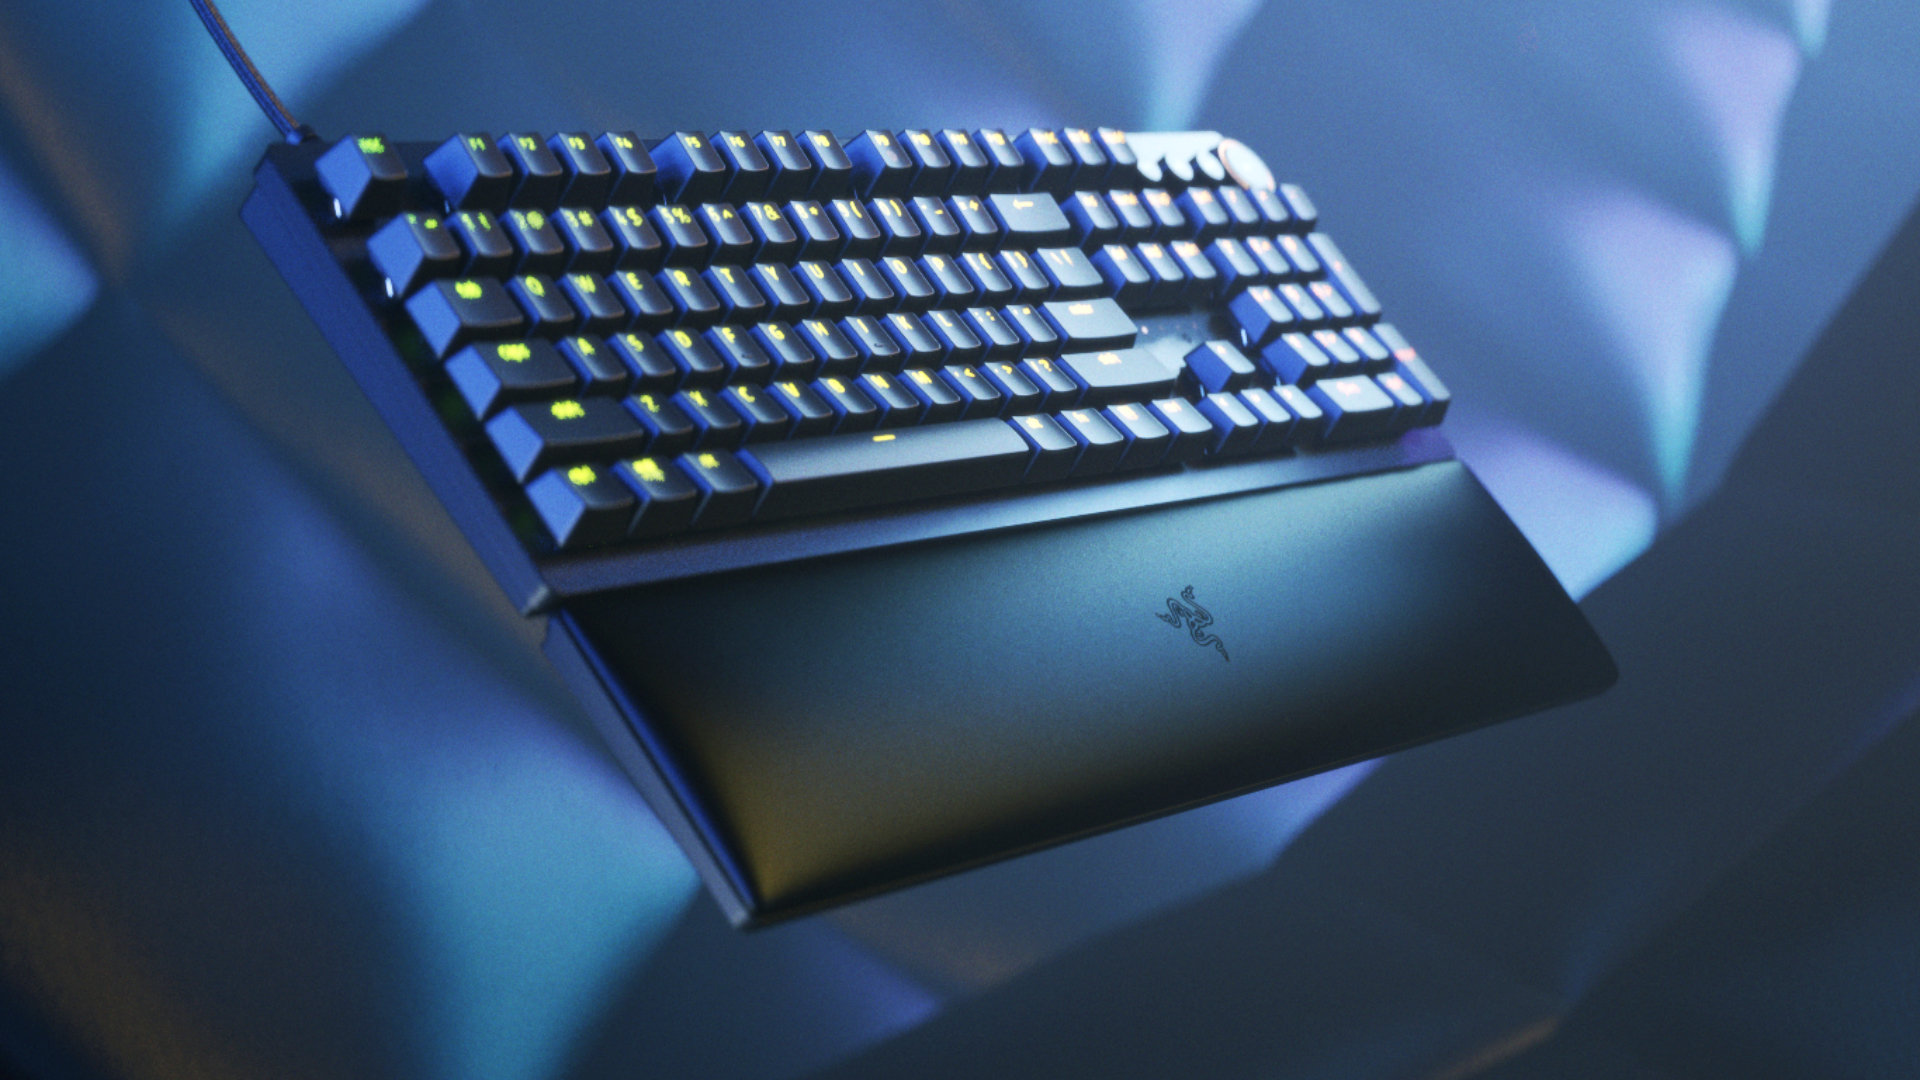 The new Razer Huntsman V2 is the company's fastest gaming keyboard